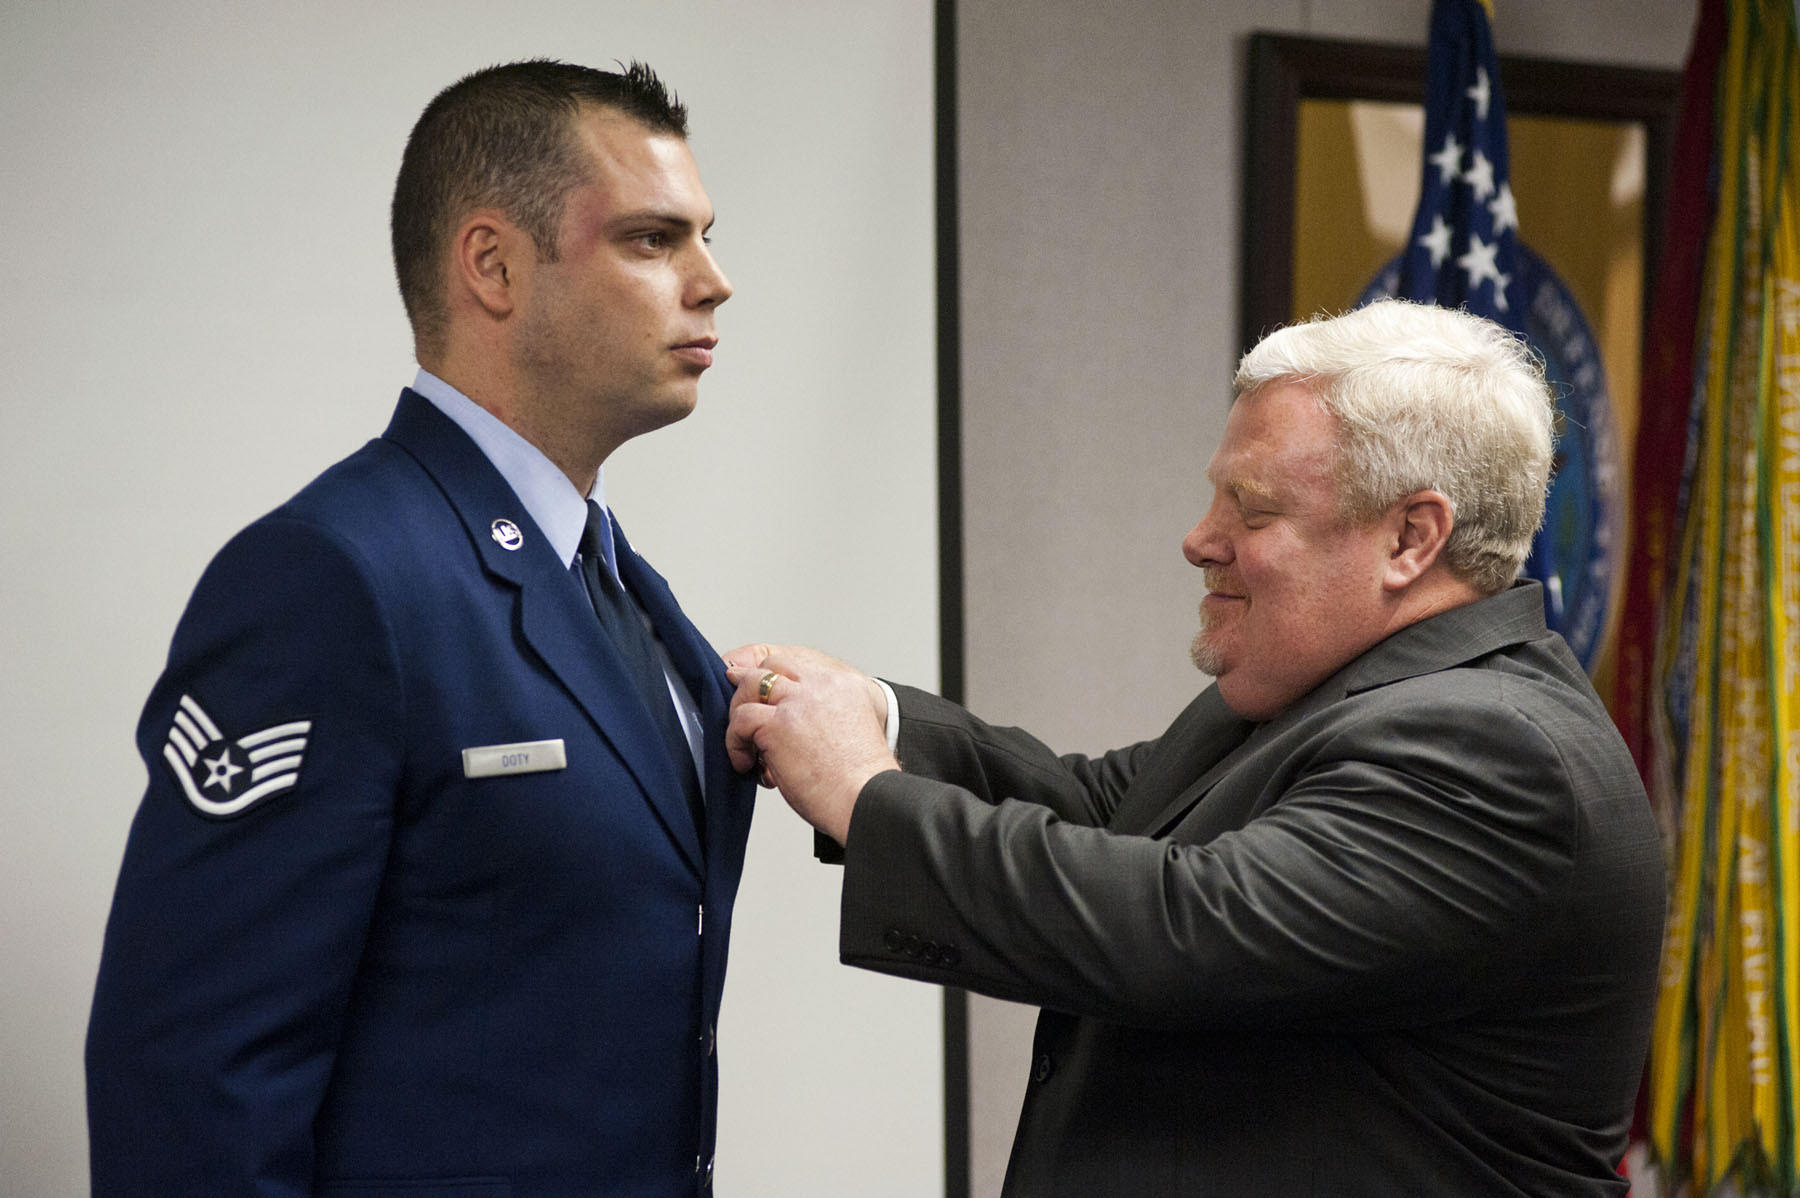 Staff Sgt. Steven Doty is presented with the Soldiers Medal by his father, Ret. Lt. Col. Timothy Doty during a ceremony on Friday, February 21.